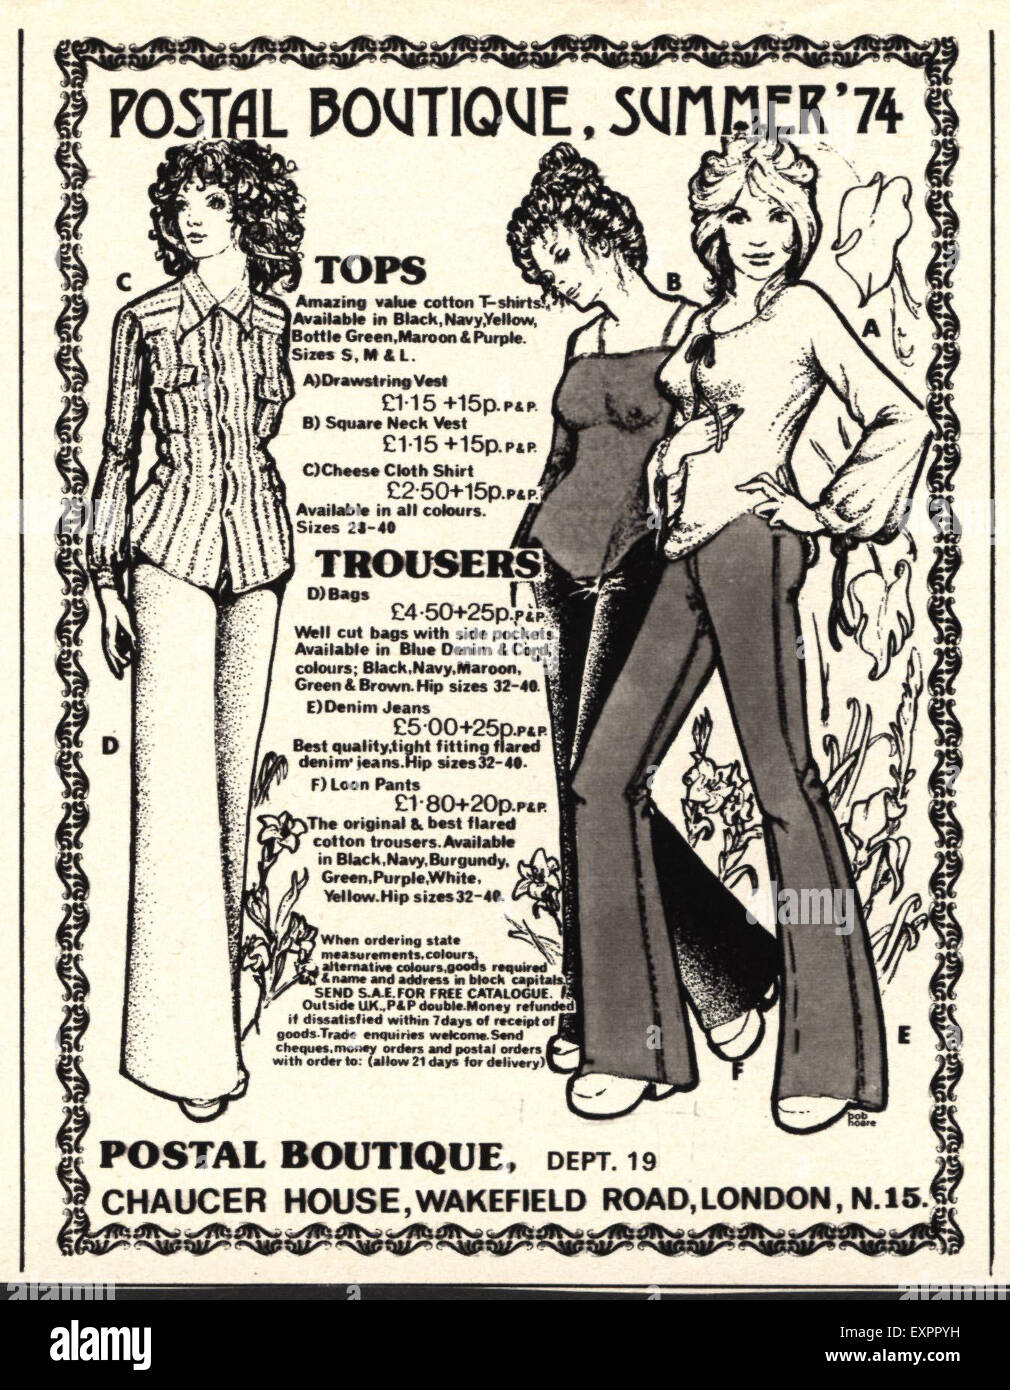 1970s UK Postal Boutique Magazine Advert Stock Photo